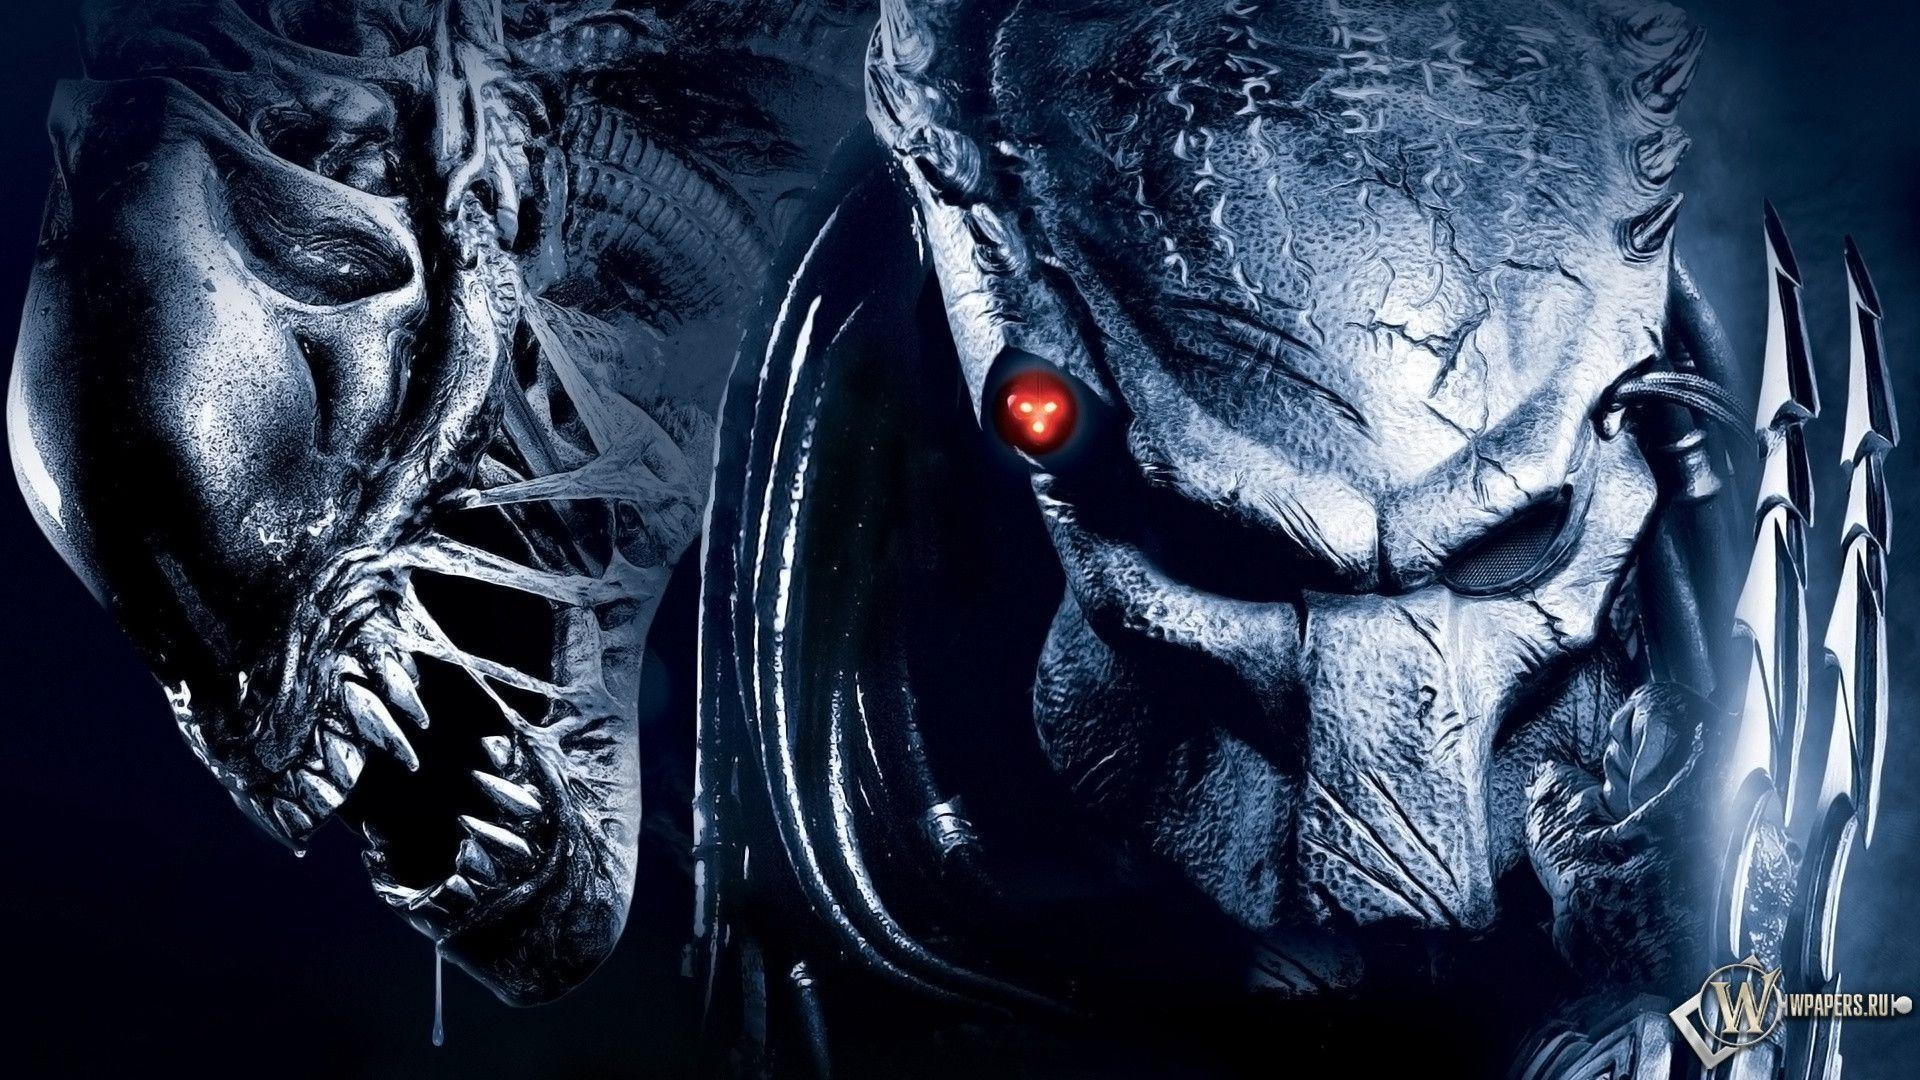 17 Alien Vs. Predator Wallpapers | Alien Vs. Predator Backgrounds